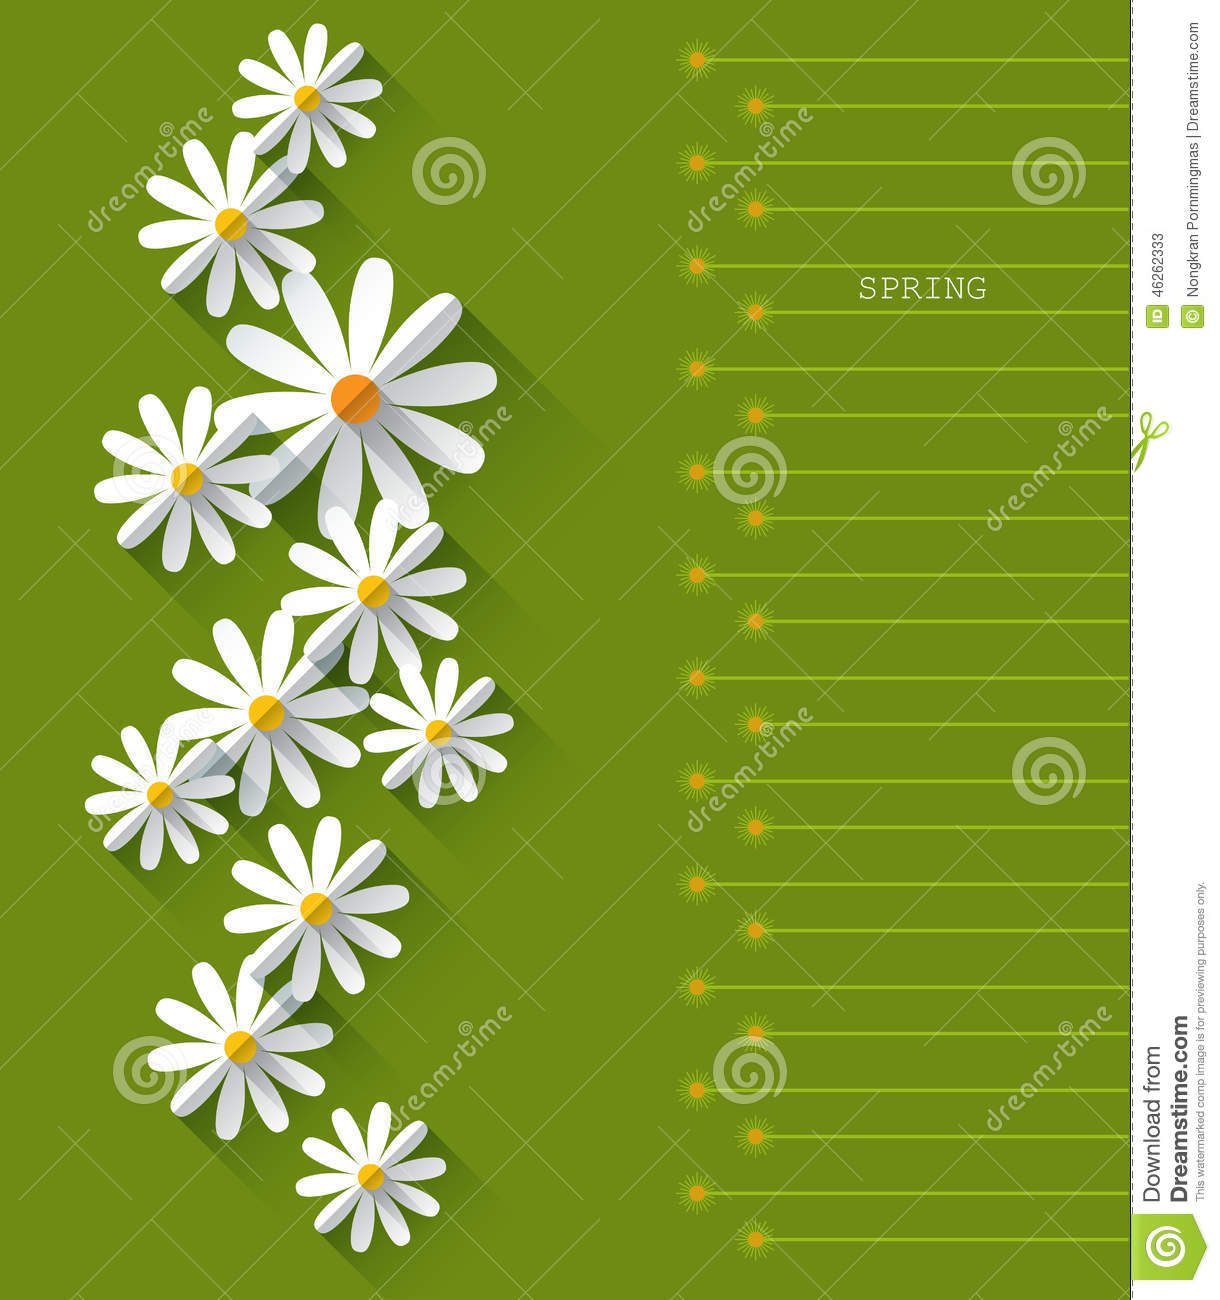 Abstract Spring Background With Paper Flowers Stock Vector